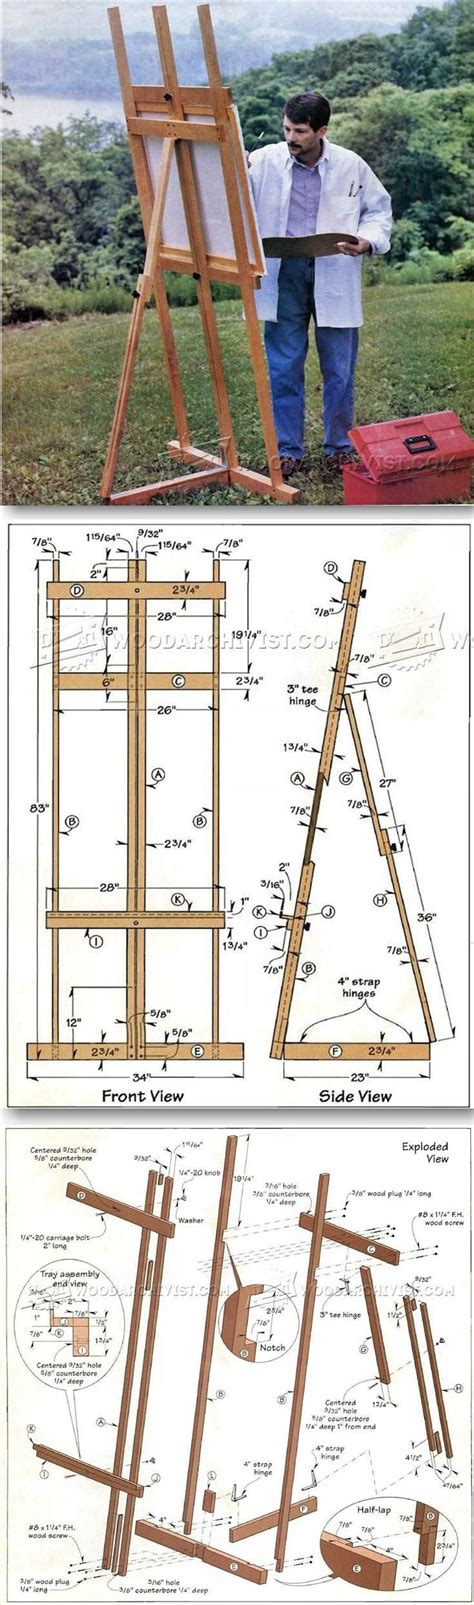 ideas  woodworking plans  pinterest woodworking projects plans woodworking